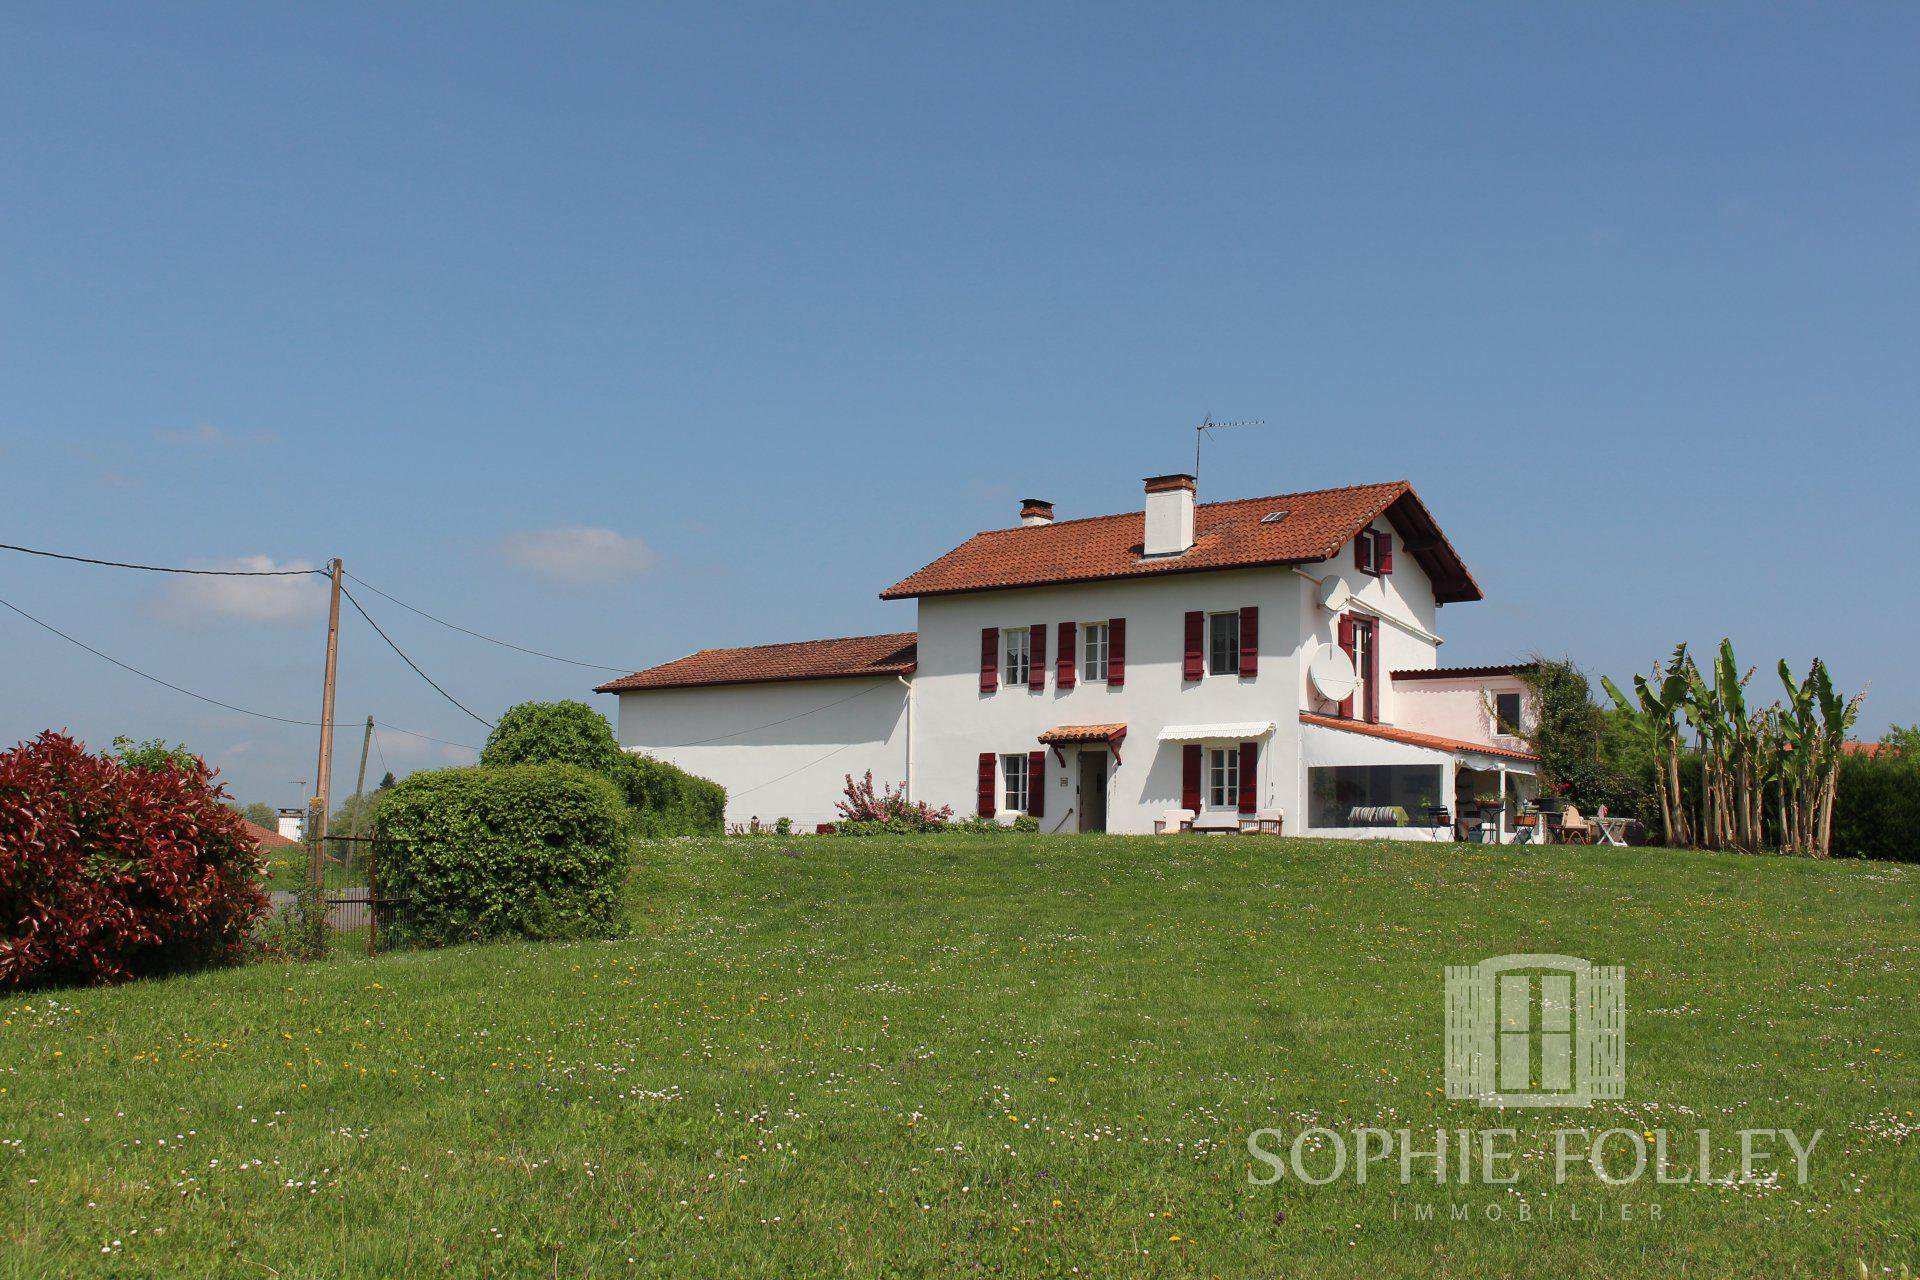 Near SAINT PALAIS - Pretty village house with garden and view of the mountains